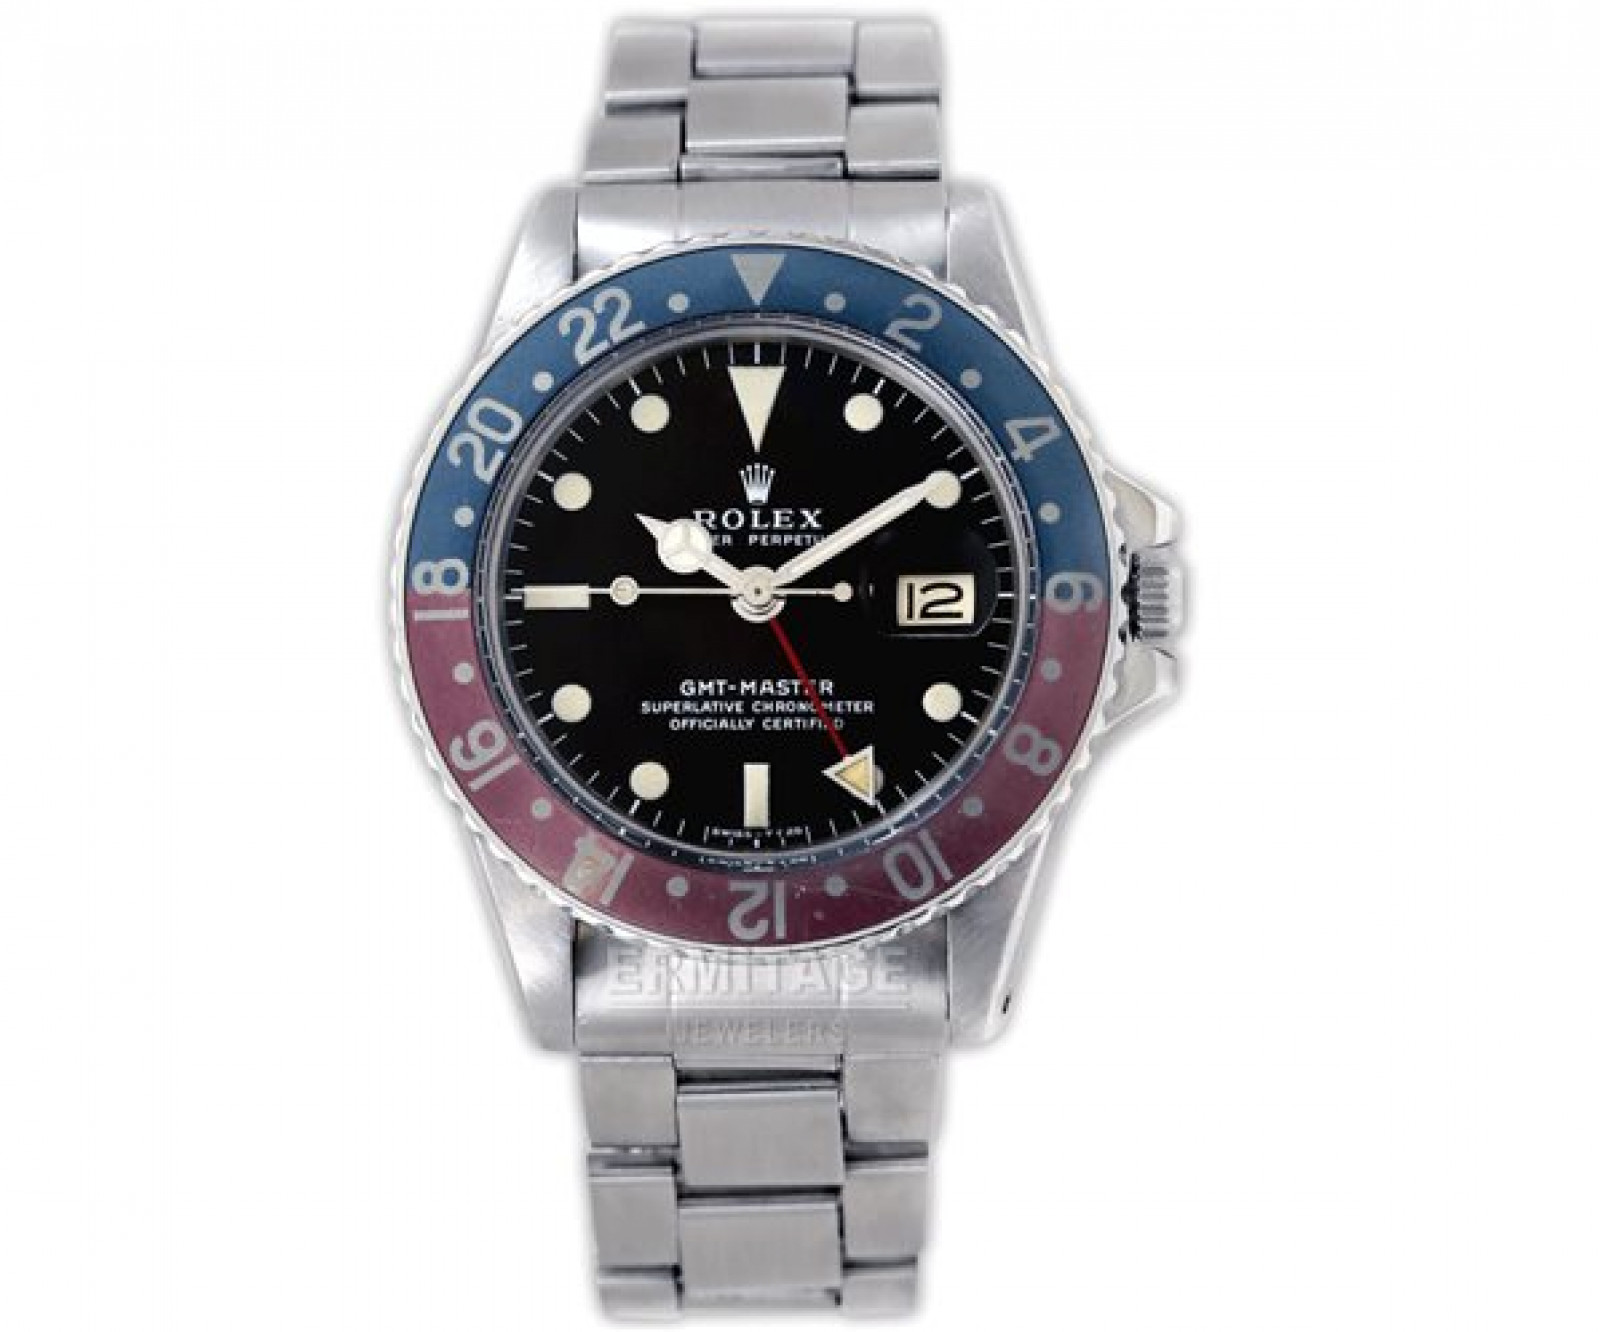 Vintage Rolex GMT-Master 1675 Steel Year 1972 with Black Dial 1972